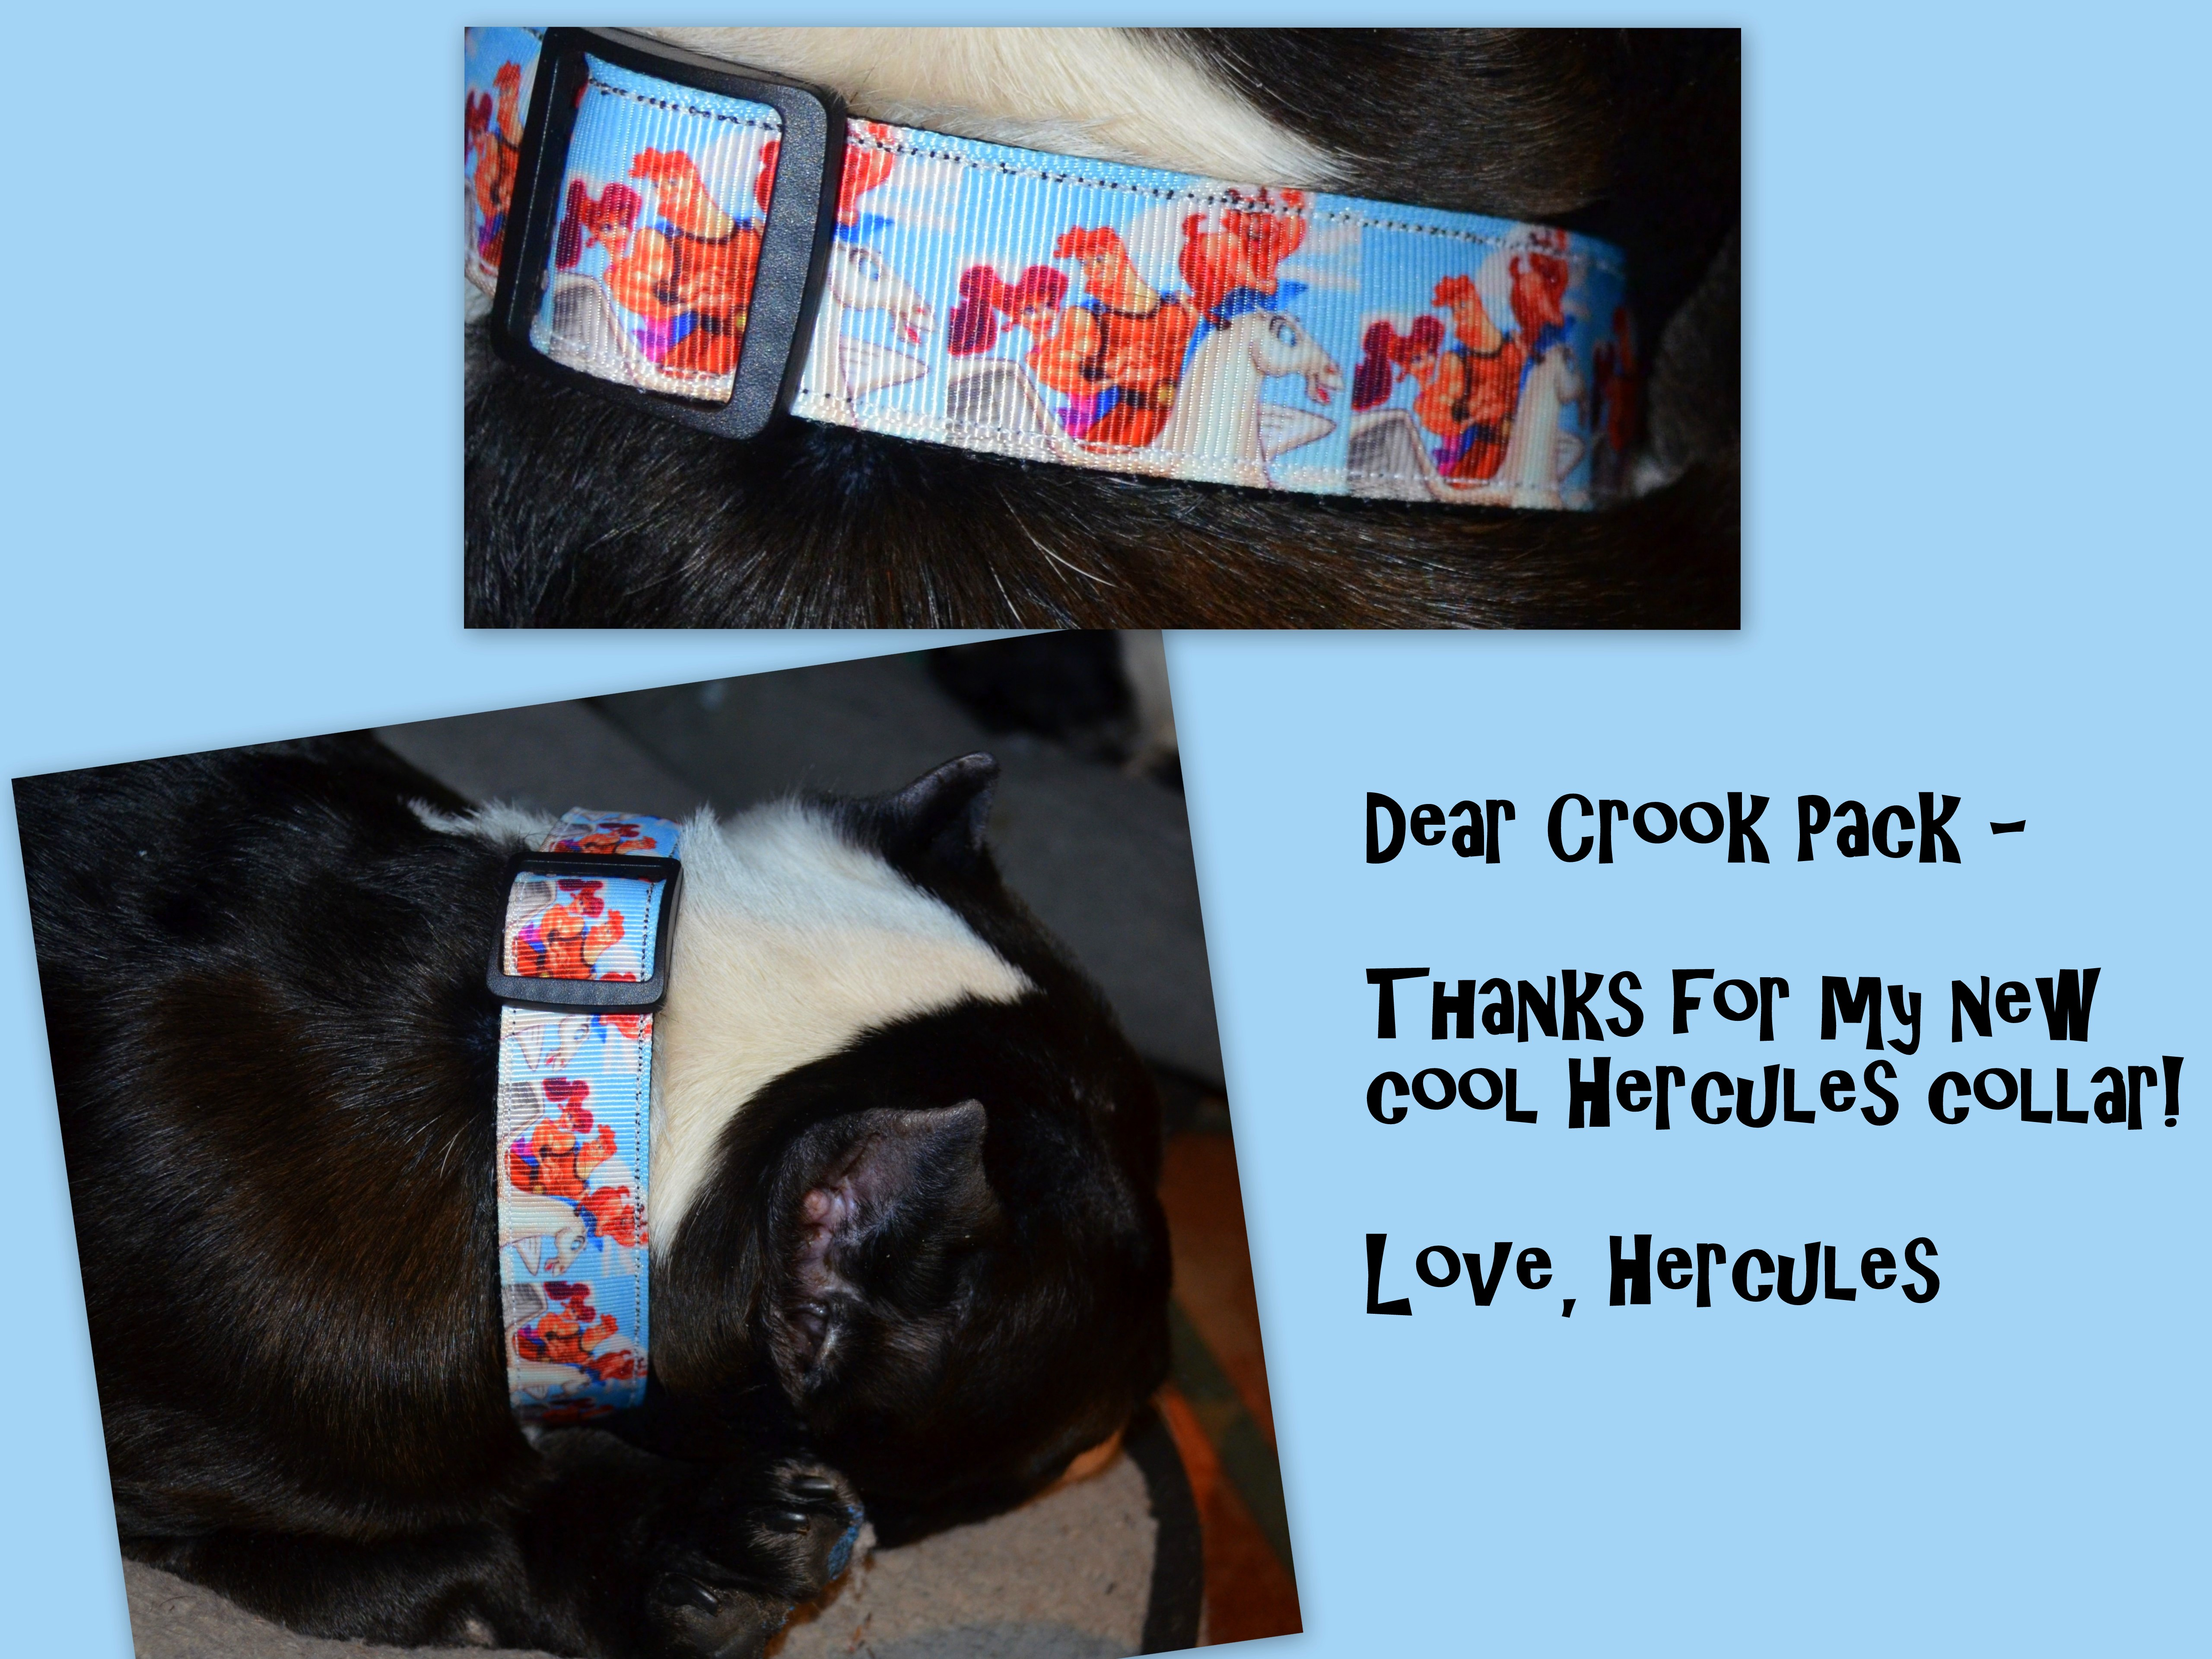 Hercules is now sporting an awesome collar featuring his namesake thanks to the Crook Pack!